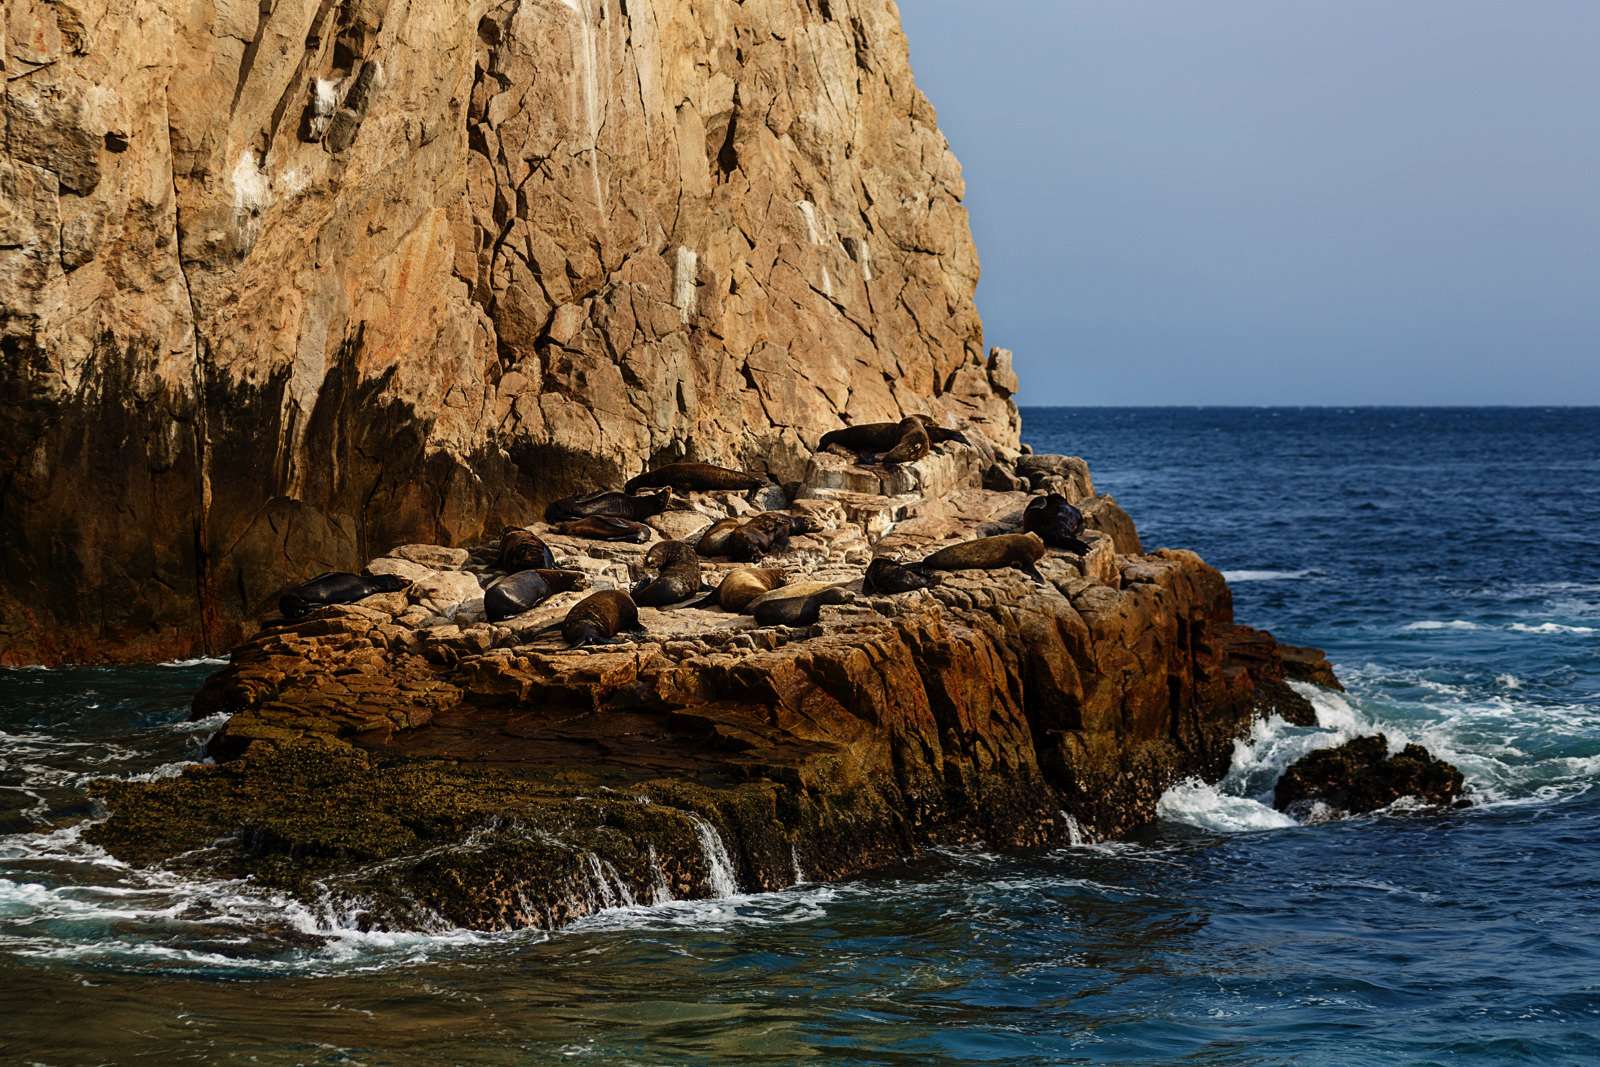 Sea lions taking a sun bath on a rock nearby El Arco in Cabo San Lucas